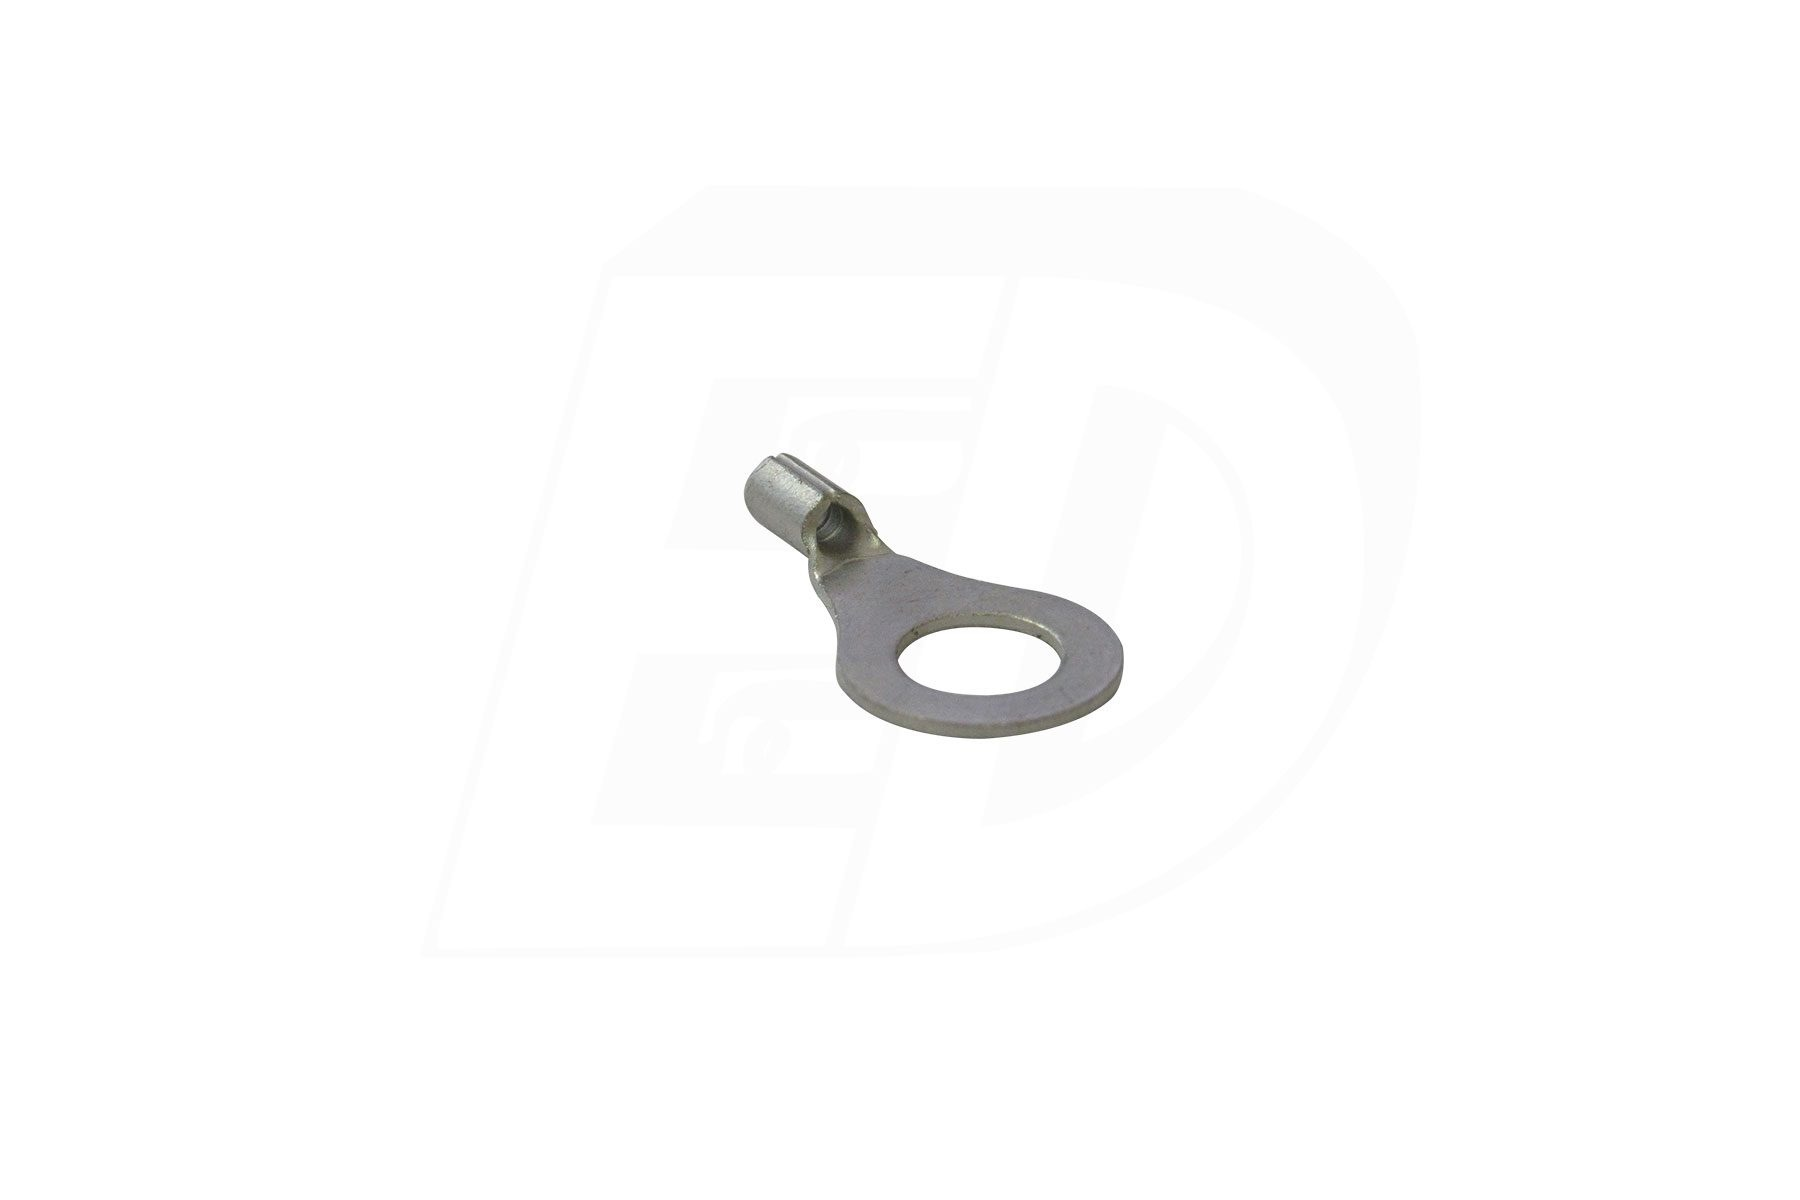 Non Insulated Ring Terminal 22 - 16 AWG